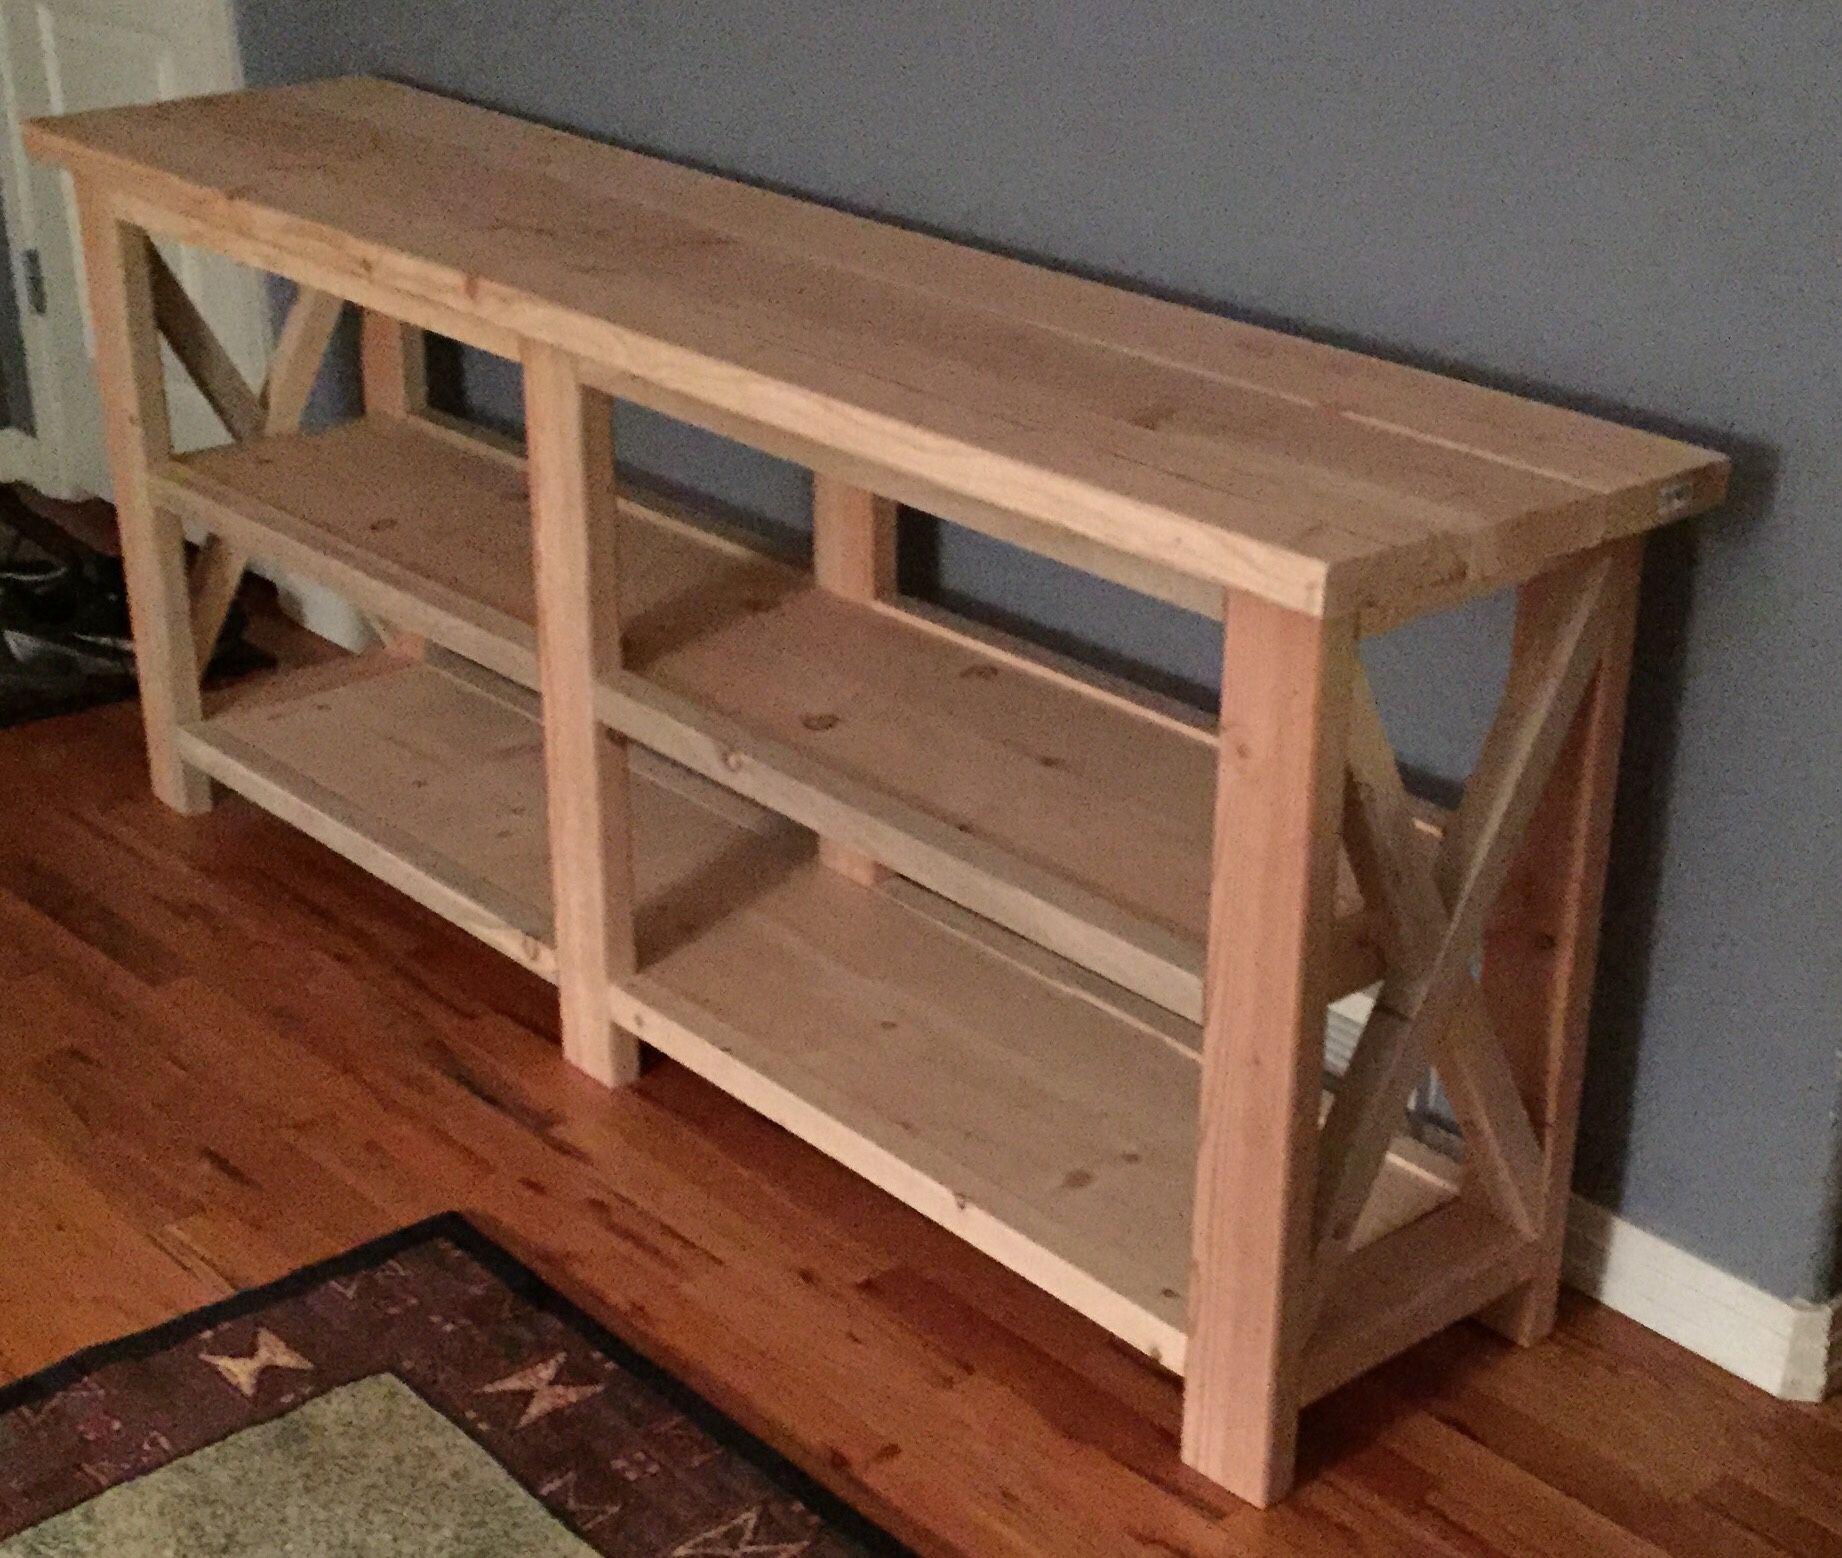 Diy Sofa Table Found On Shanty2chic Com Plans From Ana White Com With A Rustic Flair Ana White Diy Sofa Table Diy Sofa Table Homemade Sofa Rustic Sofa Tables